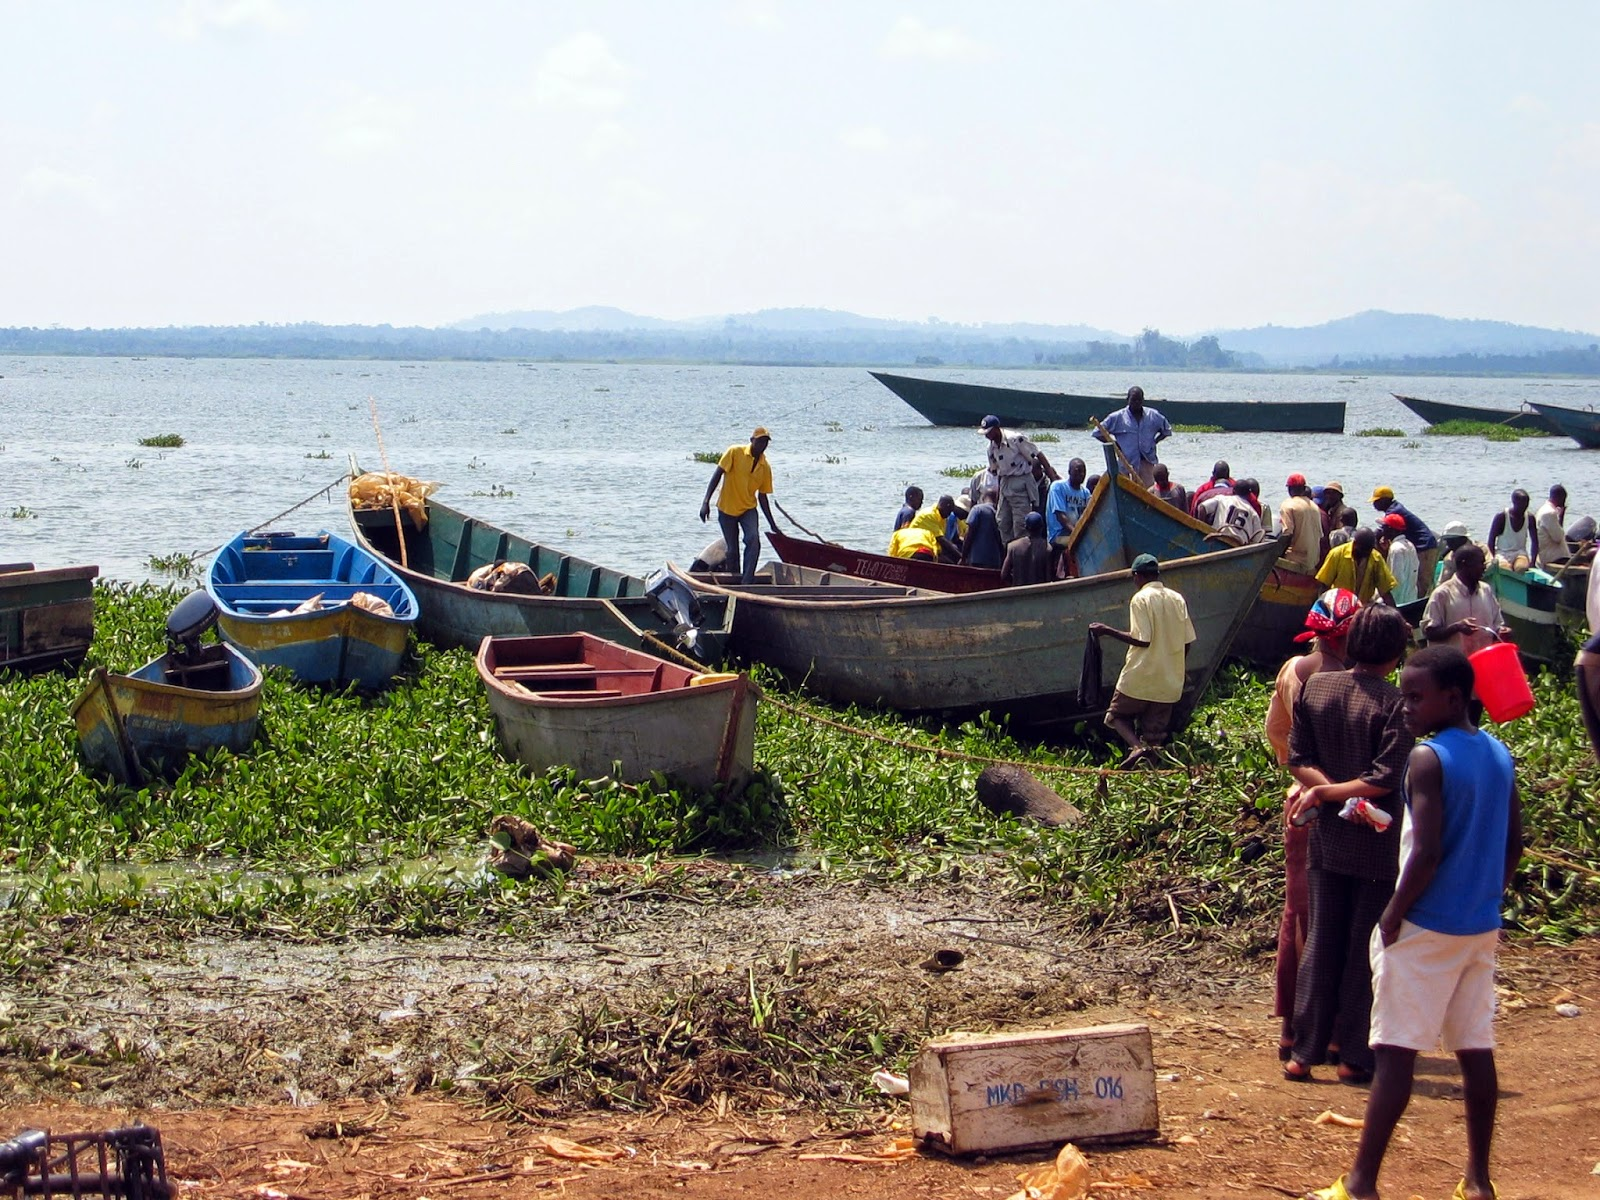 http://www.newvision.co.ug/news/666453-ministry-worried-about-reducing-fish-stocks.html